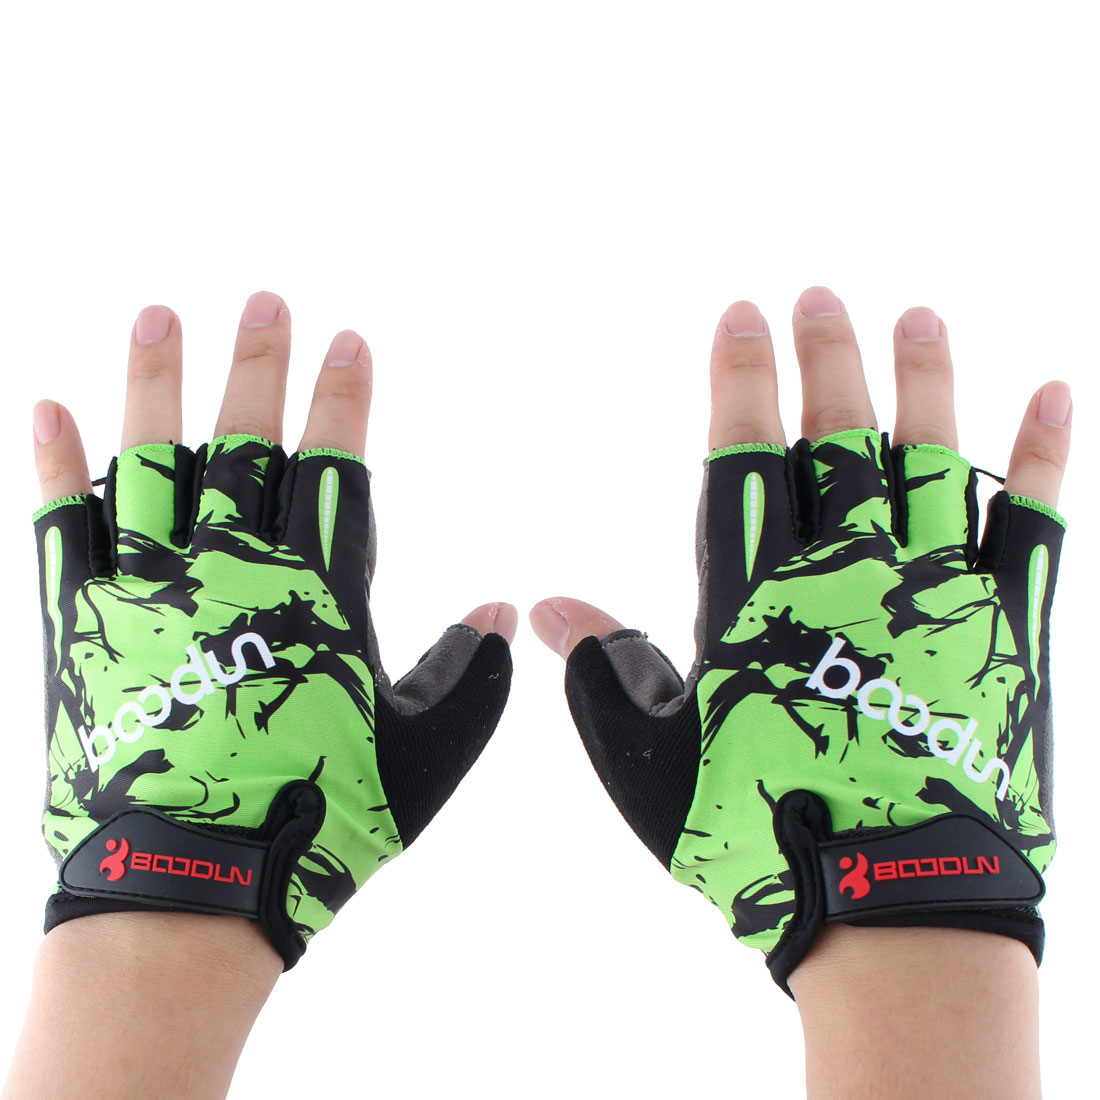 BOODUN Authorized Polyester Exercise Sports Gym Lifting Training Bodybuilding Protector Half Finger Fitness Gloves Green L Pair